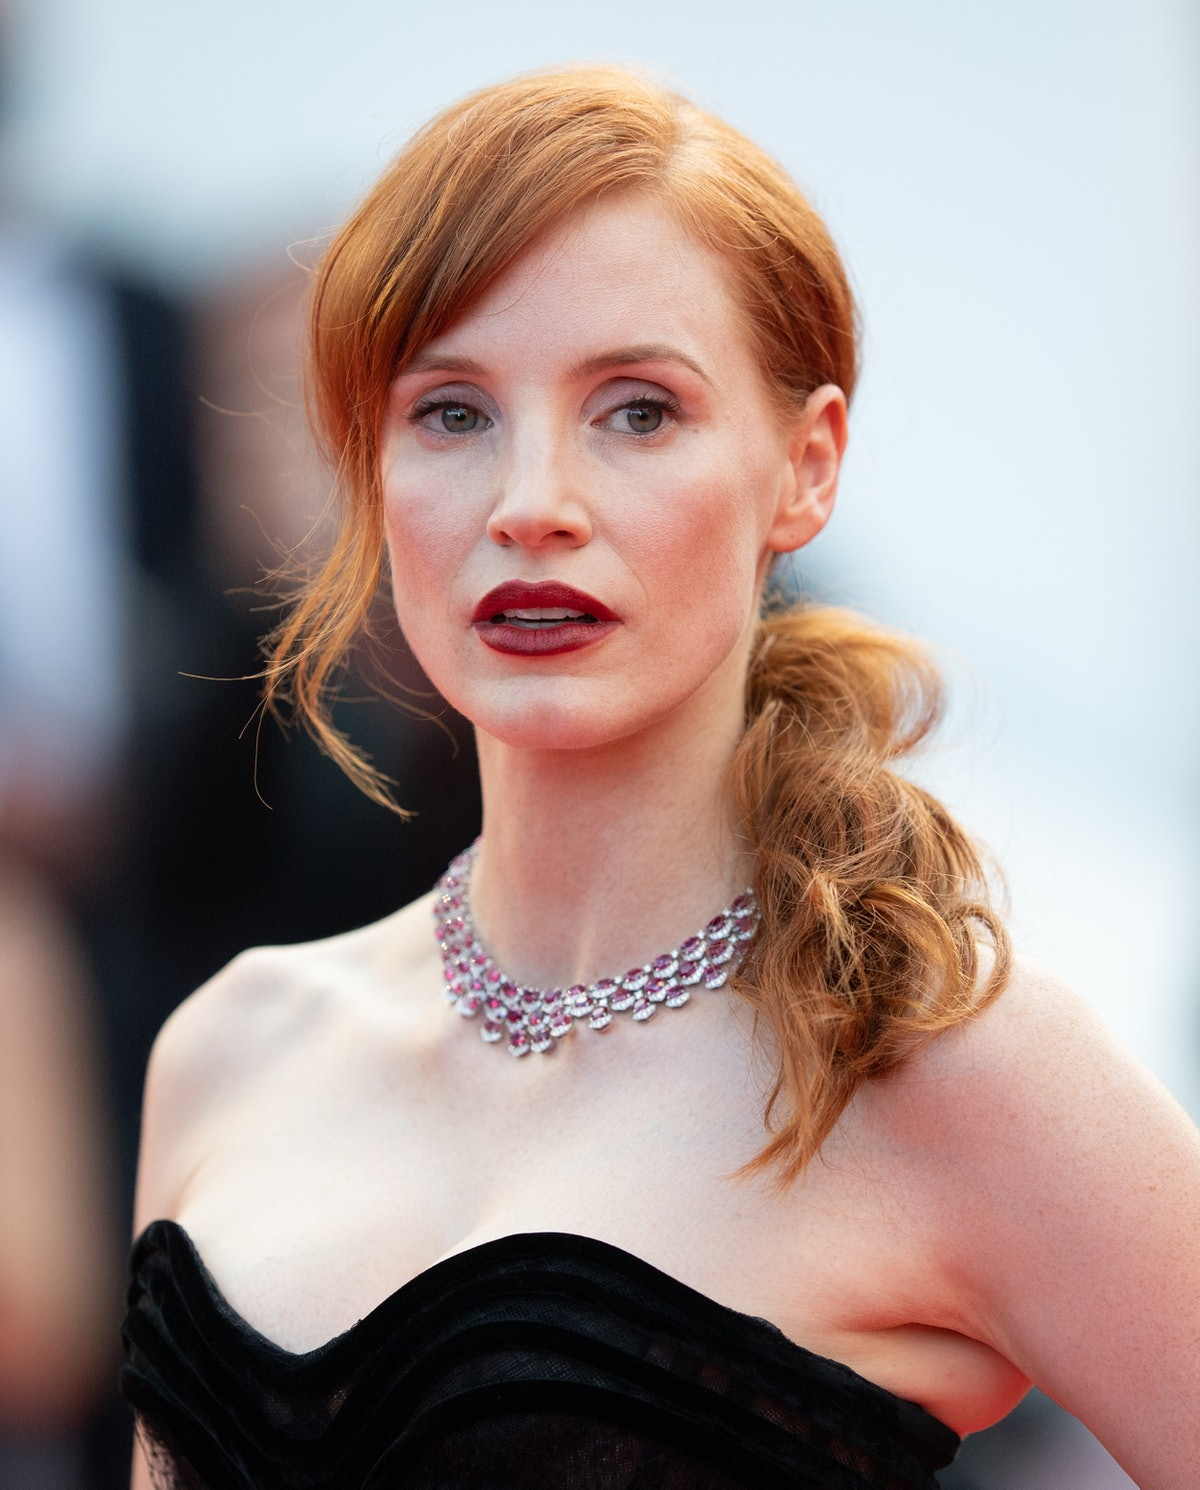 """CANNES, FRANCE - JULY 06: Jessica Chastain attends the """"Annette"""" screening and opening ceremony during the 74th annual Cannes Film Festival on July 06, 2021 in Cannes, France. (Photo by Samir Hussein/WireImage)"""